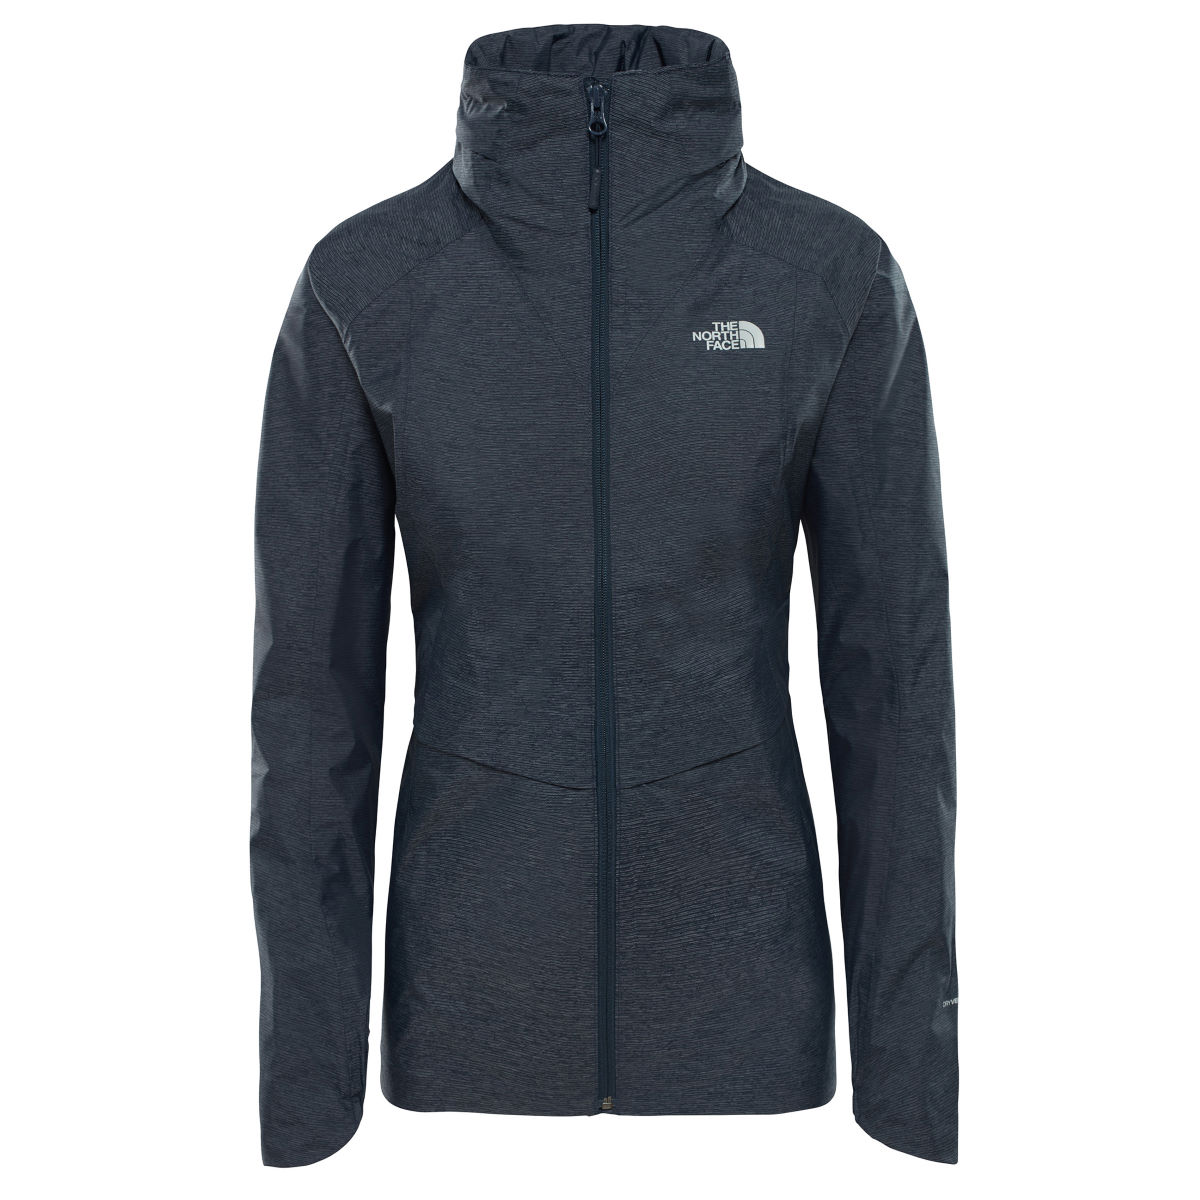 The North Face The North Face Women's Inlux DryVent™ Jacket   Jackets